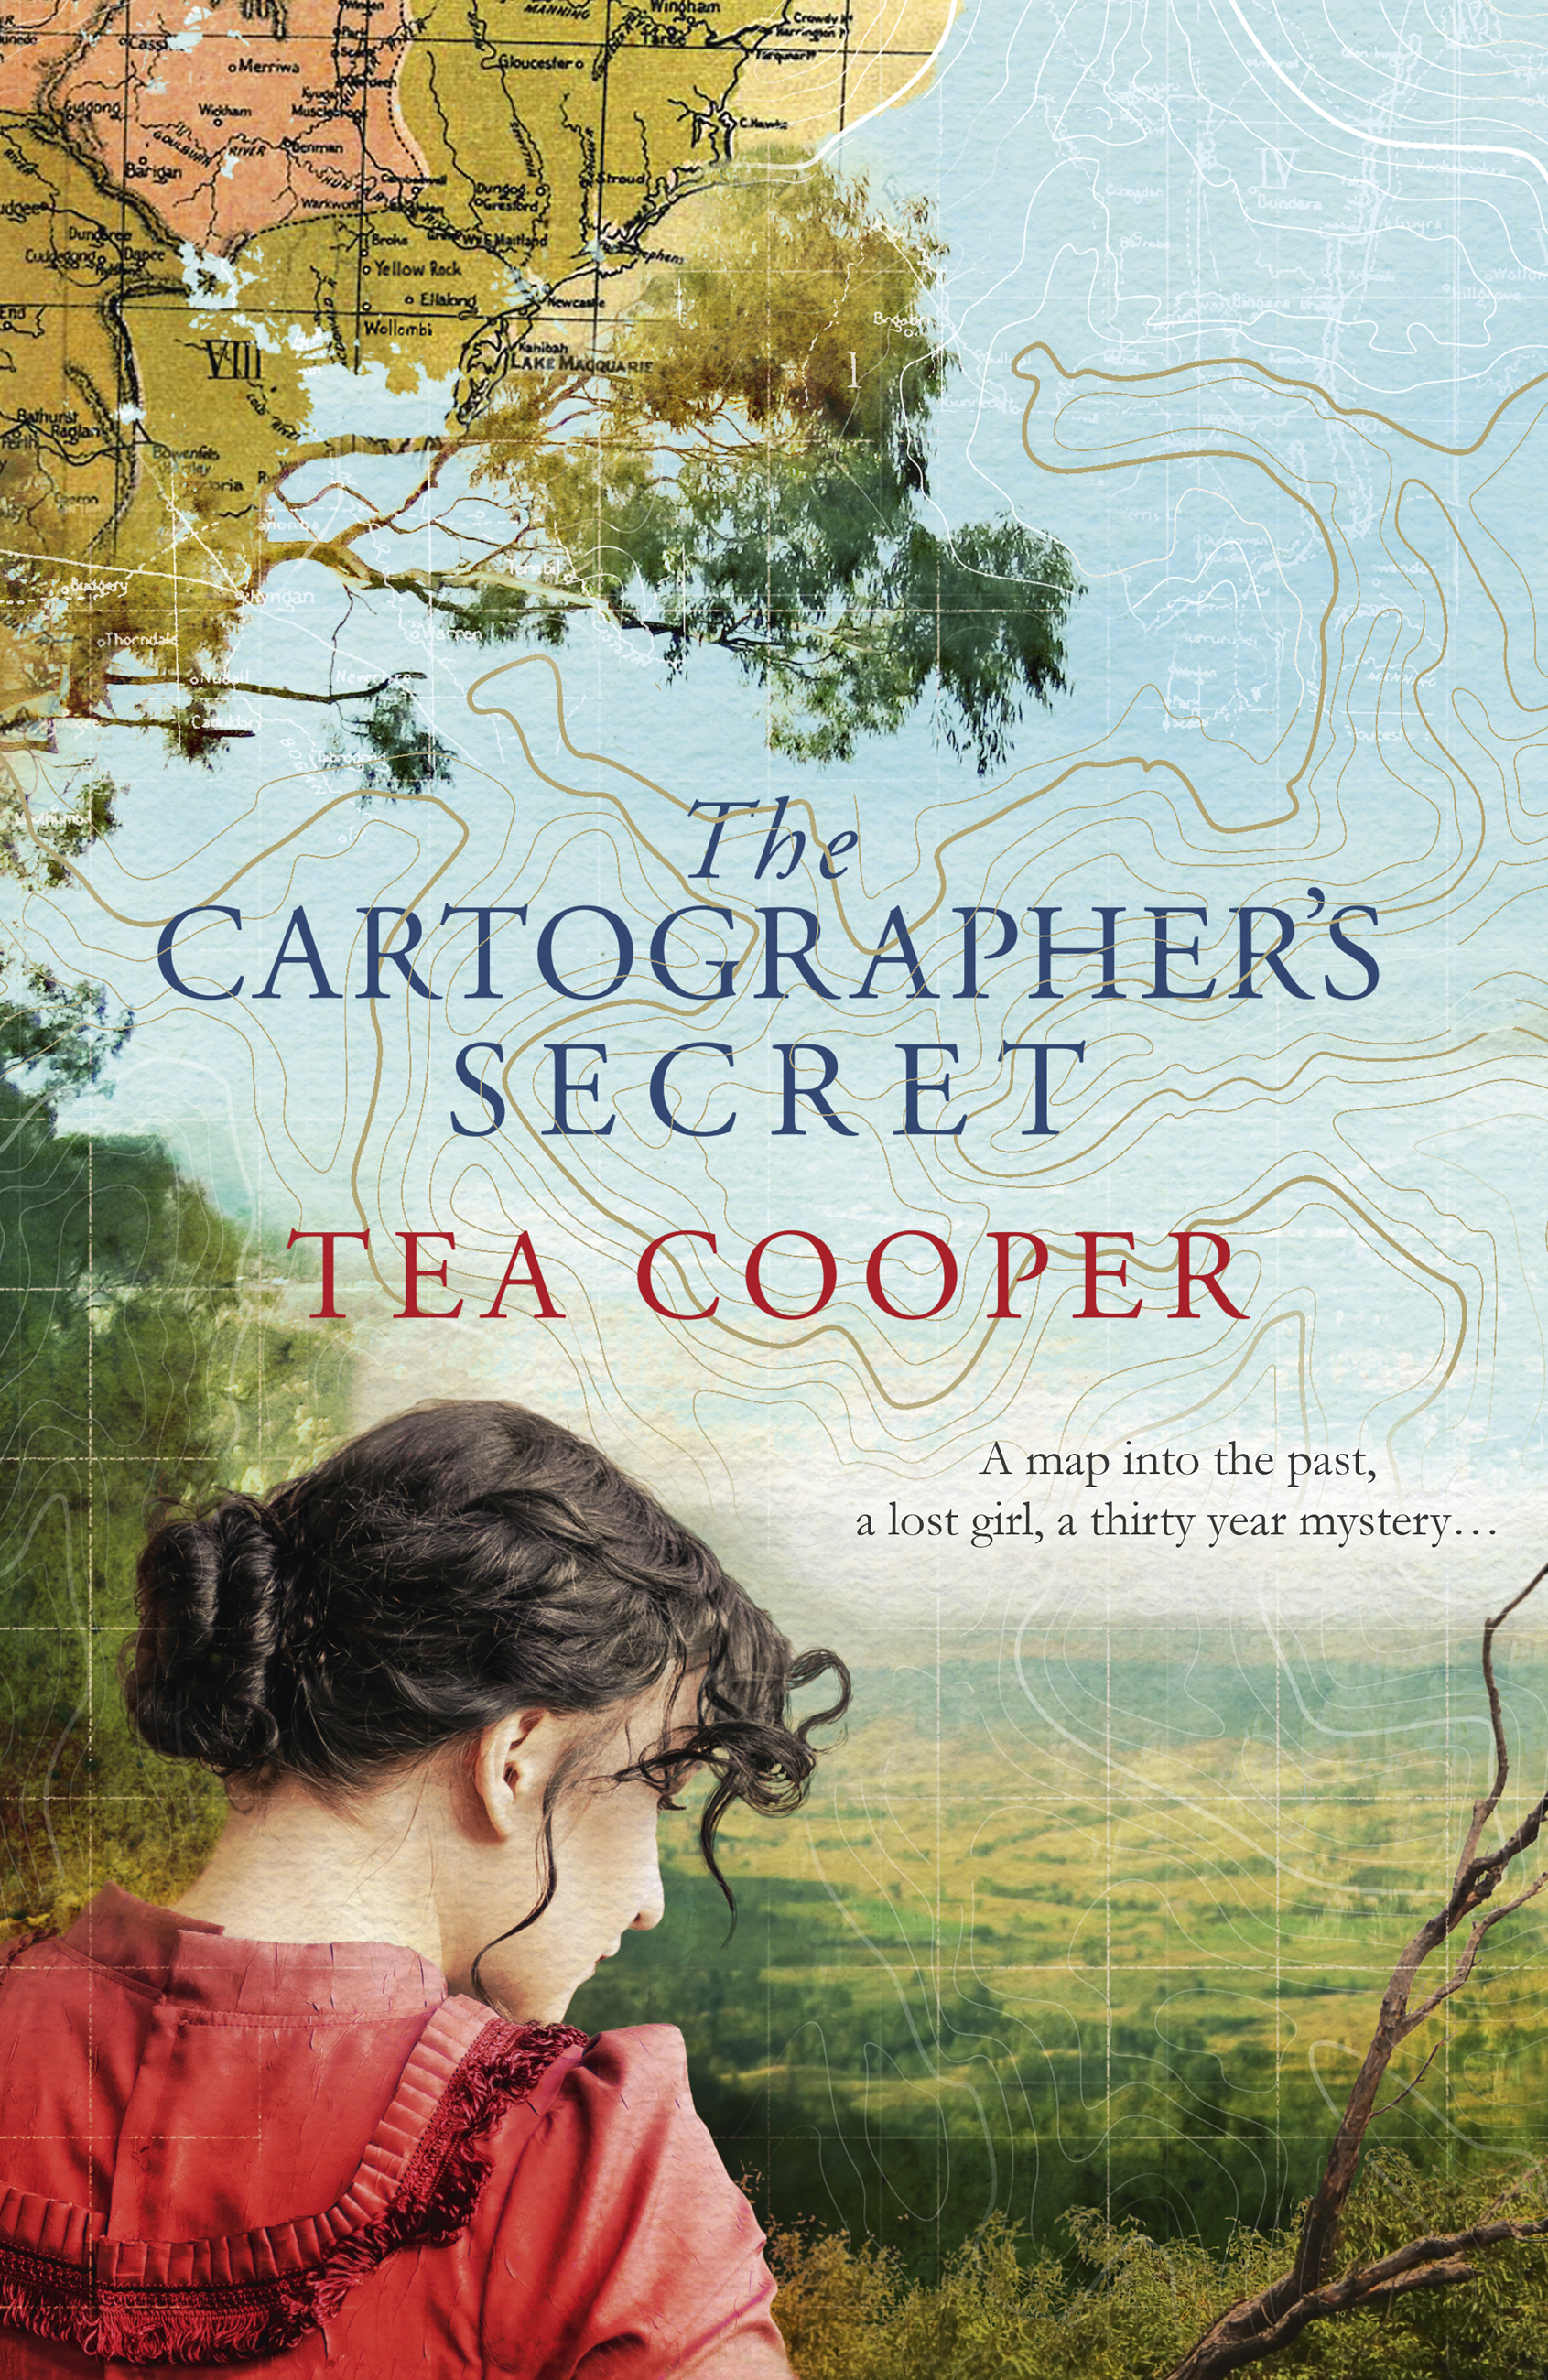 The Cartographer's Secret